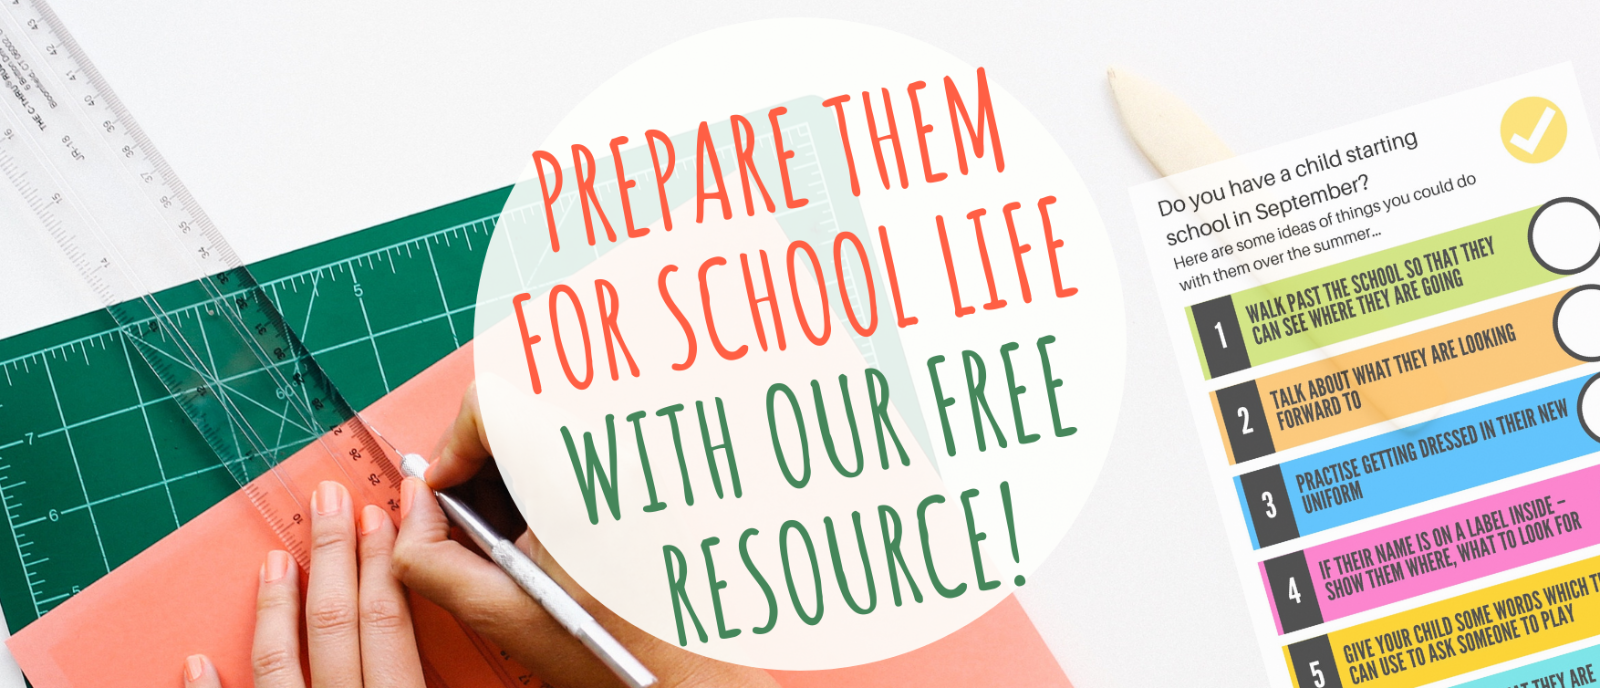 Preparing for School this september - a free resource for your family.